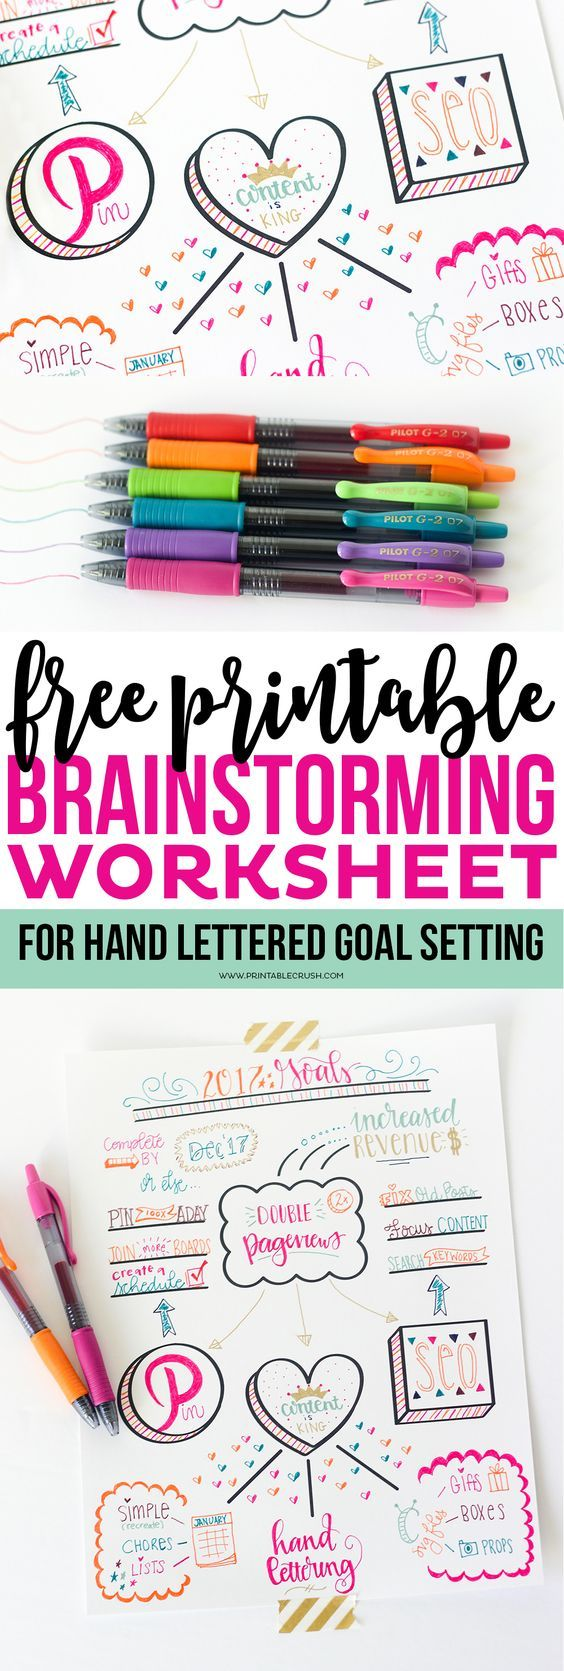 Make Goal Setting Fun With This Free Printable Hand Lettered Goal